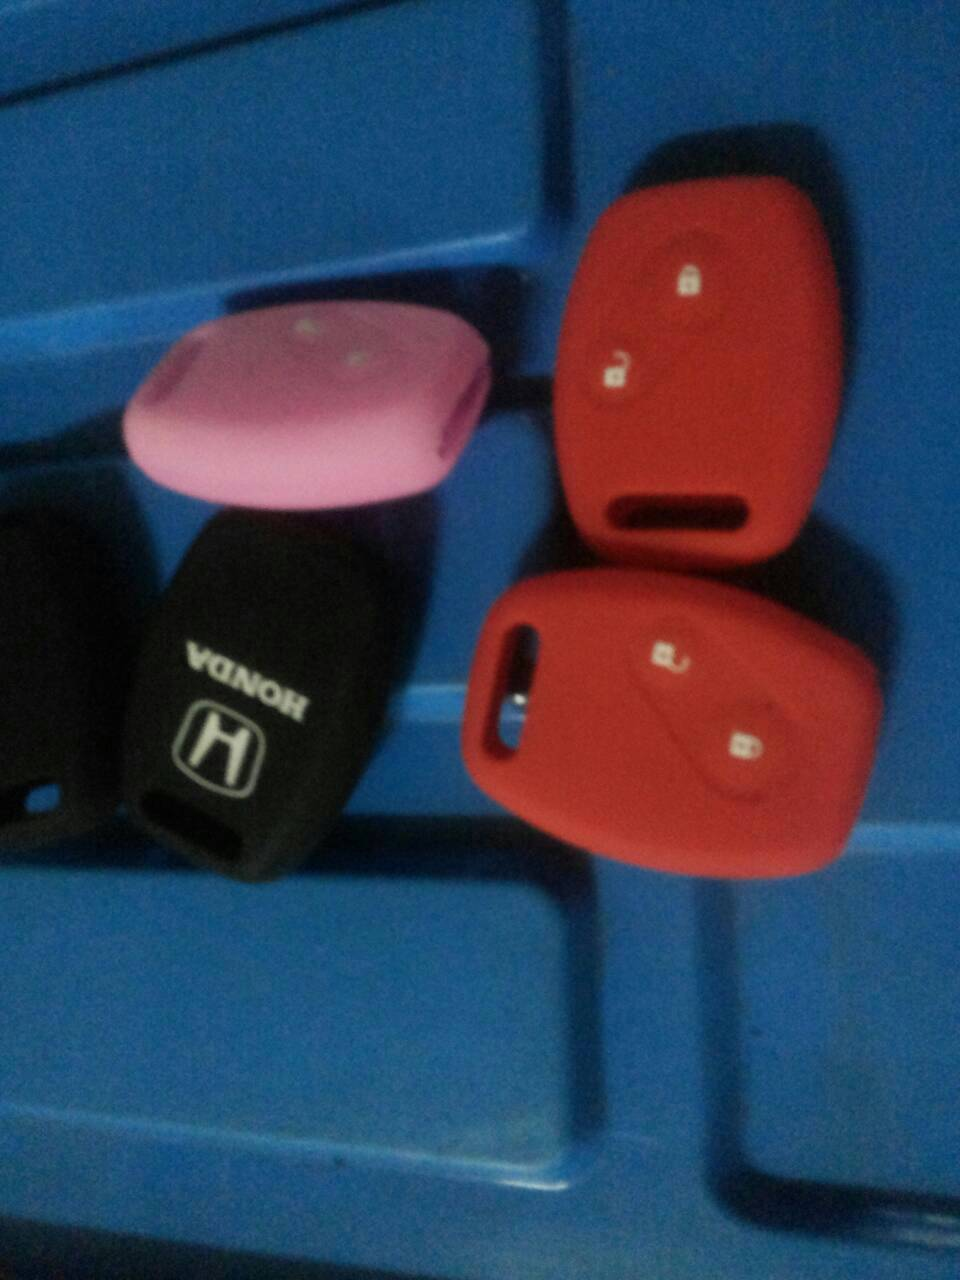 Honda Jazz GE, Crv,Civic FD cover remote silicon